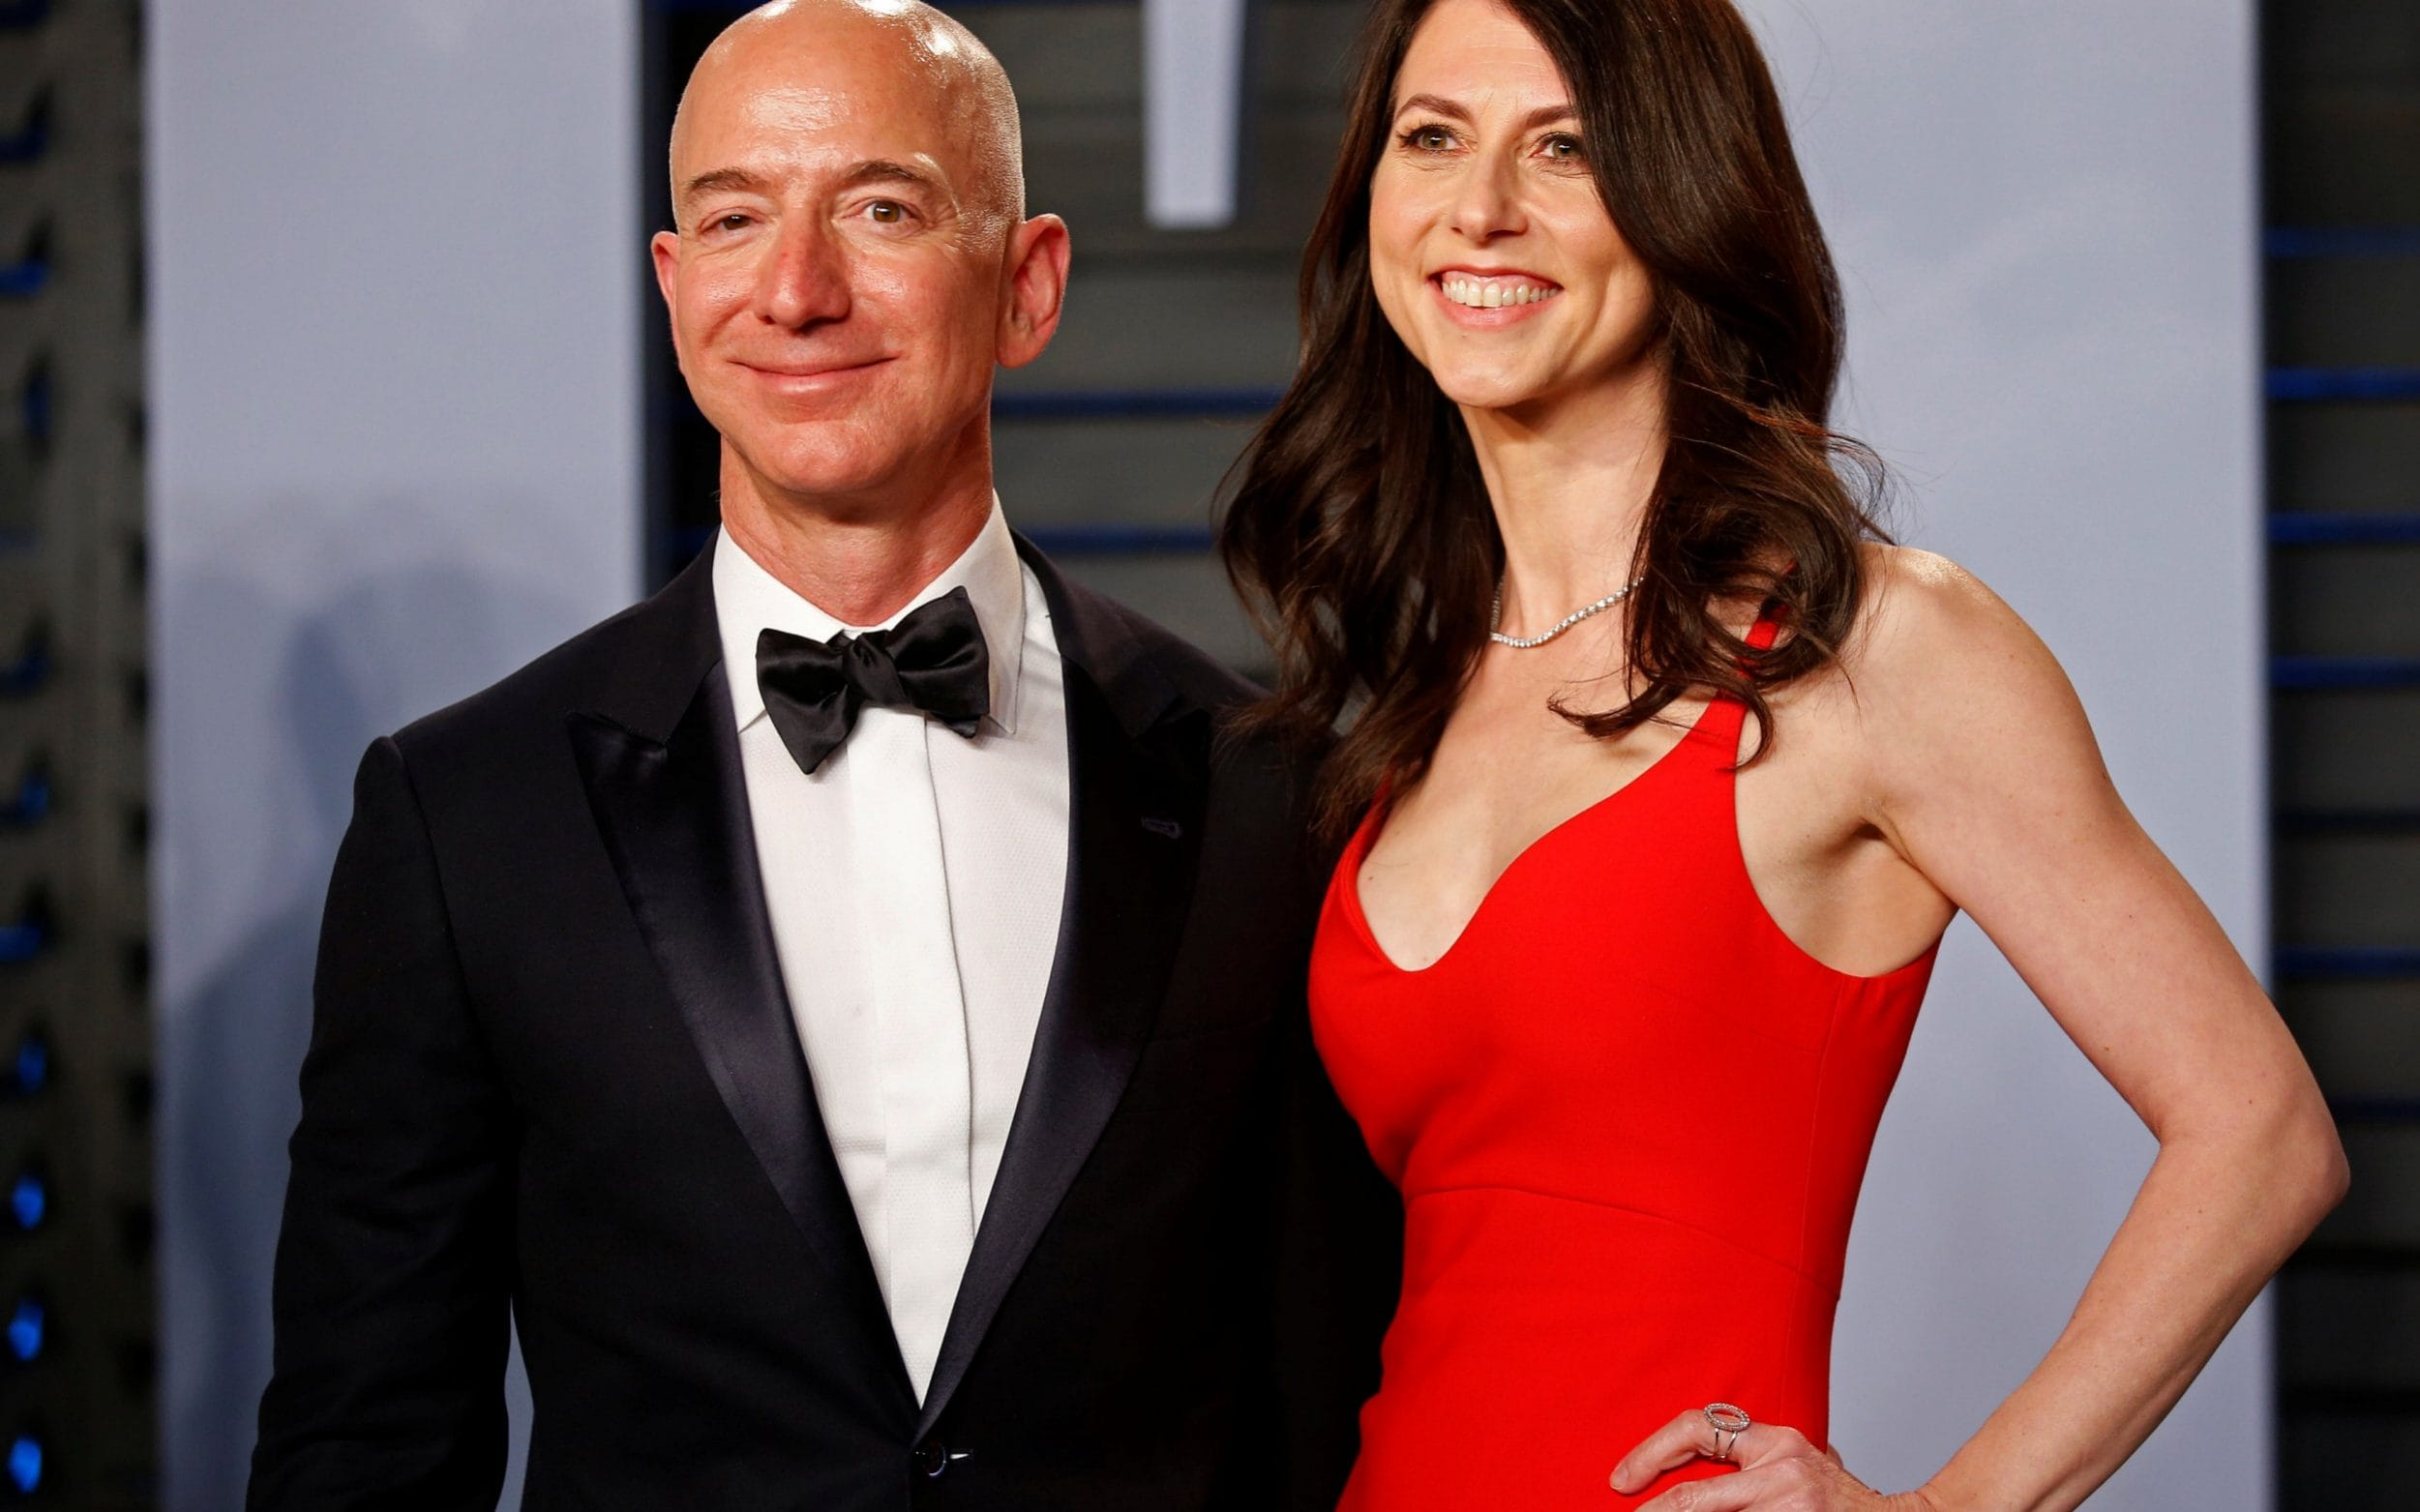 Worlds biggest divorce settlement will see Amazon founder Jeff Bezos, pay $38 billion to wife, MacKenzie